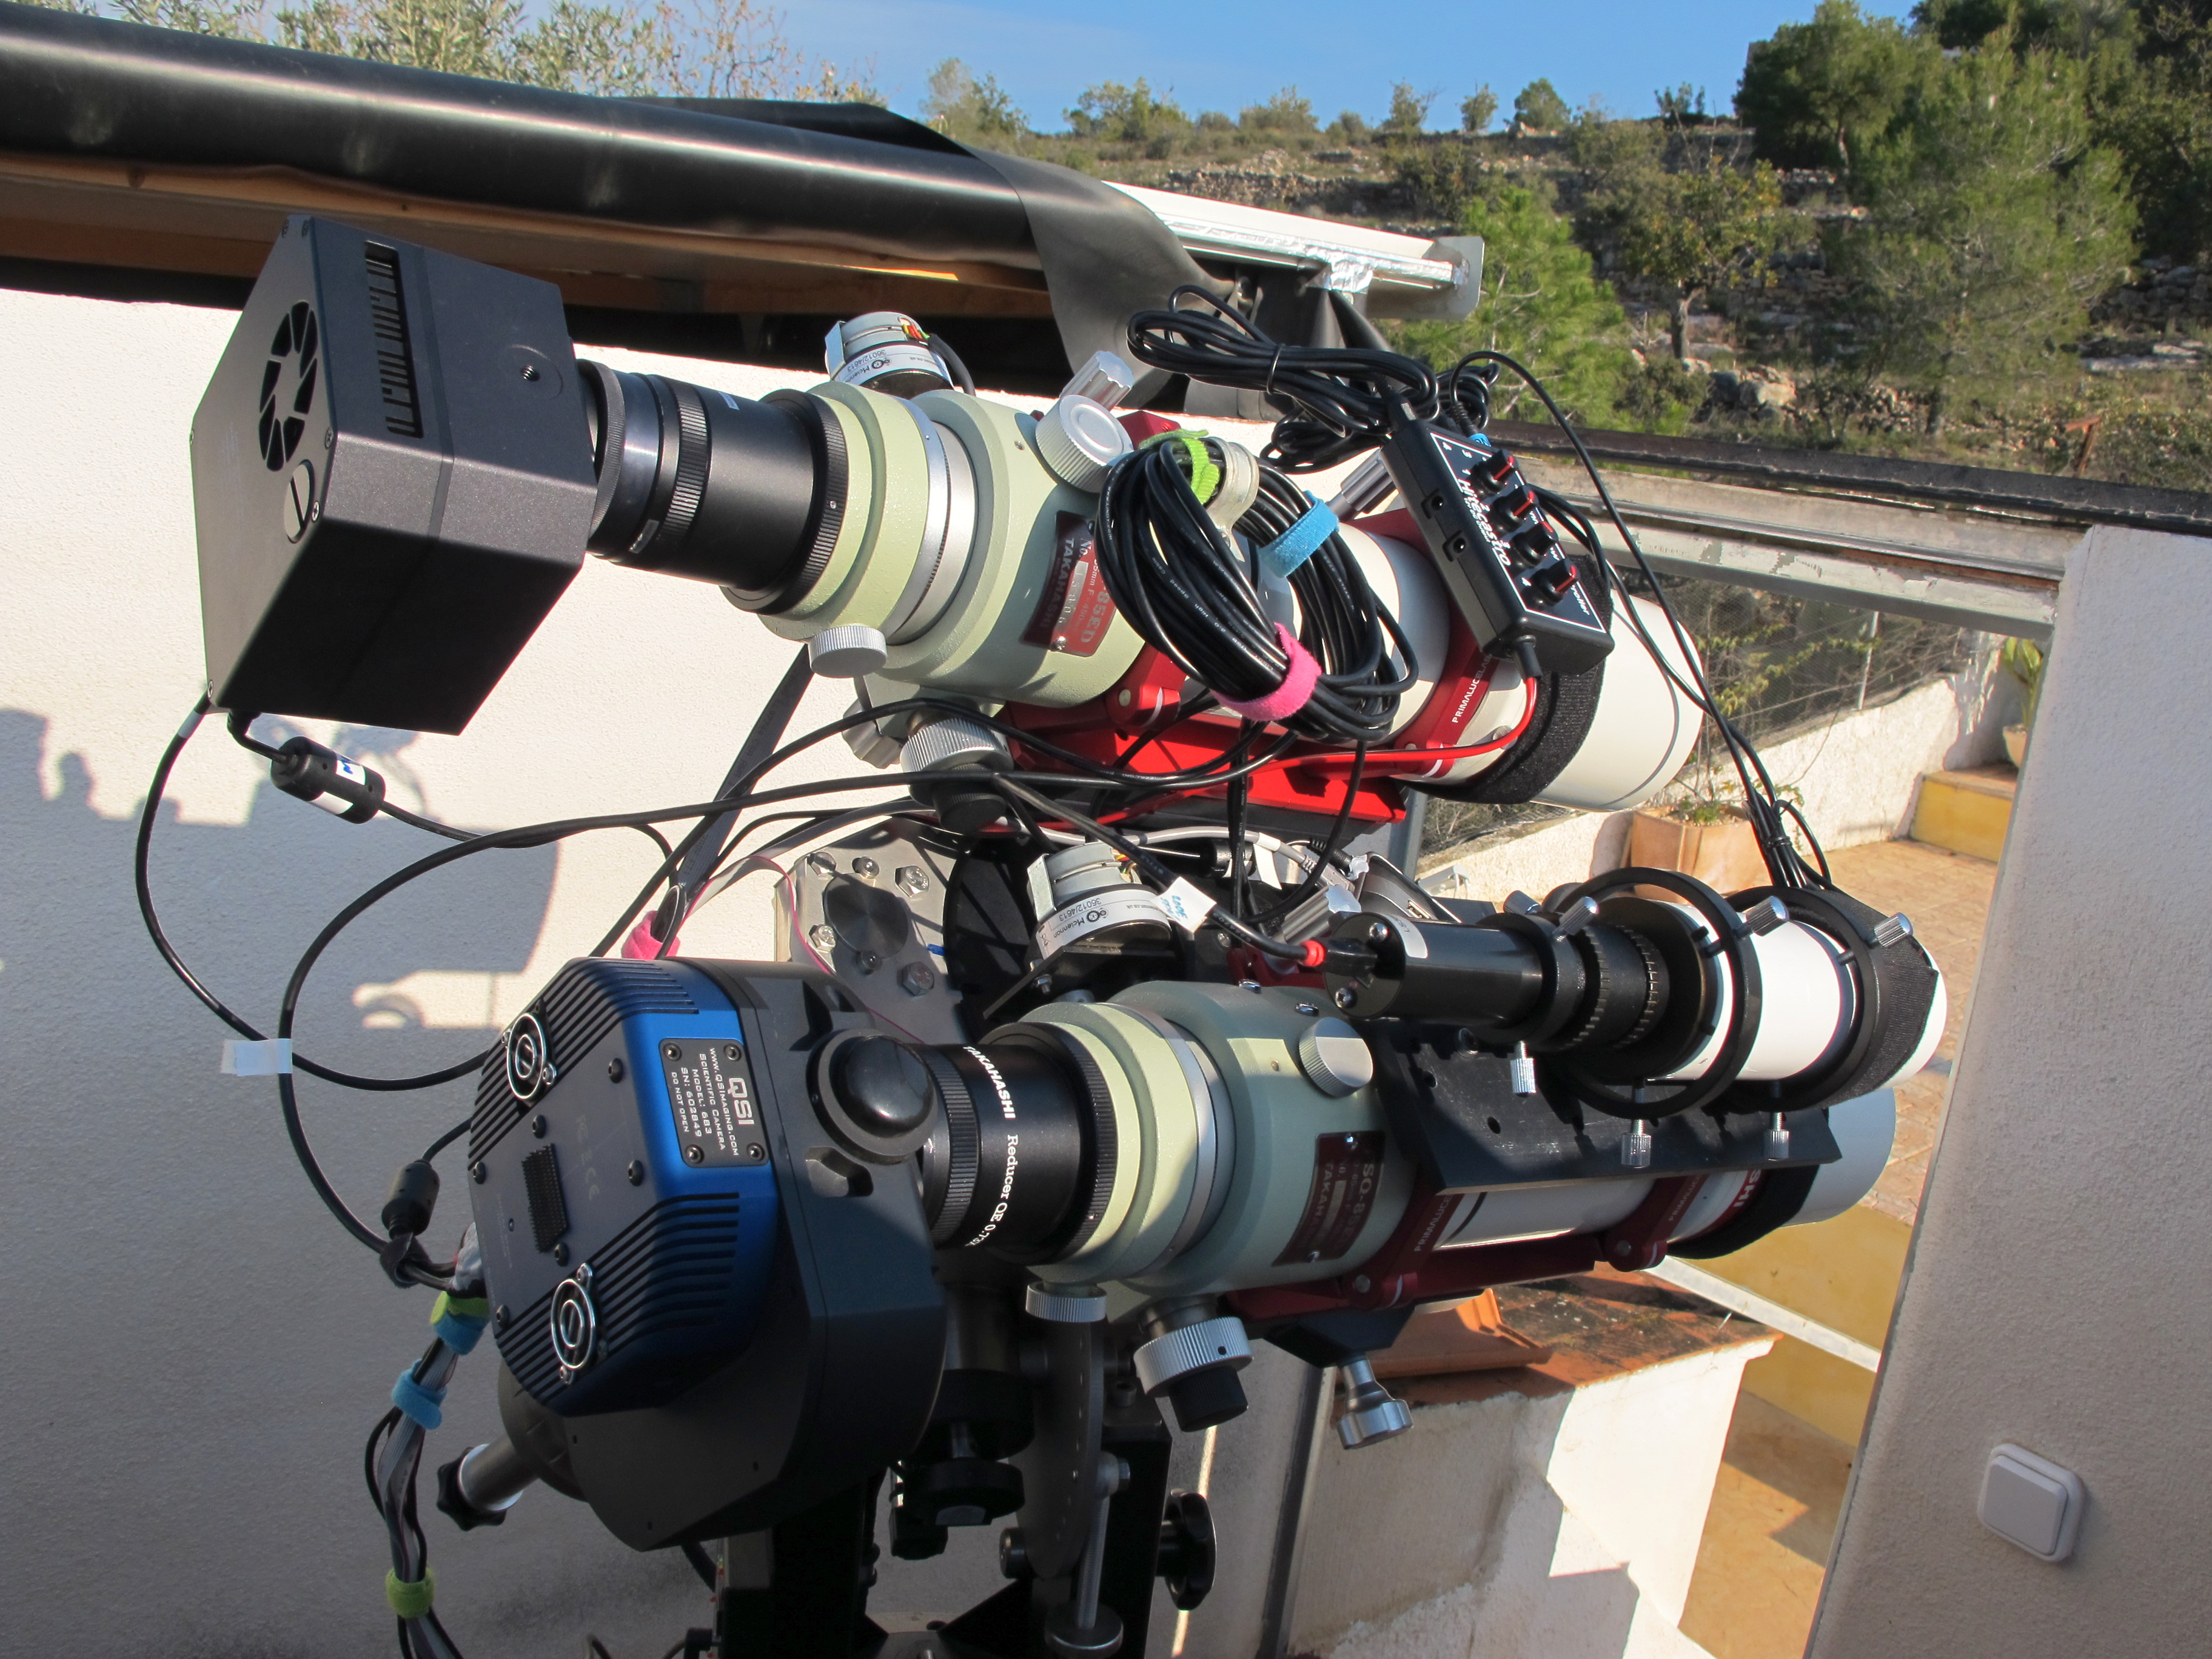 Equipment that Sara Wager uses for astrophotography - Sara Wager